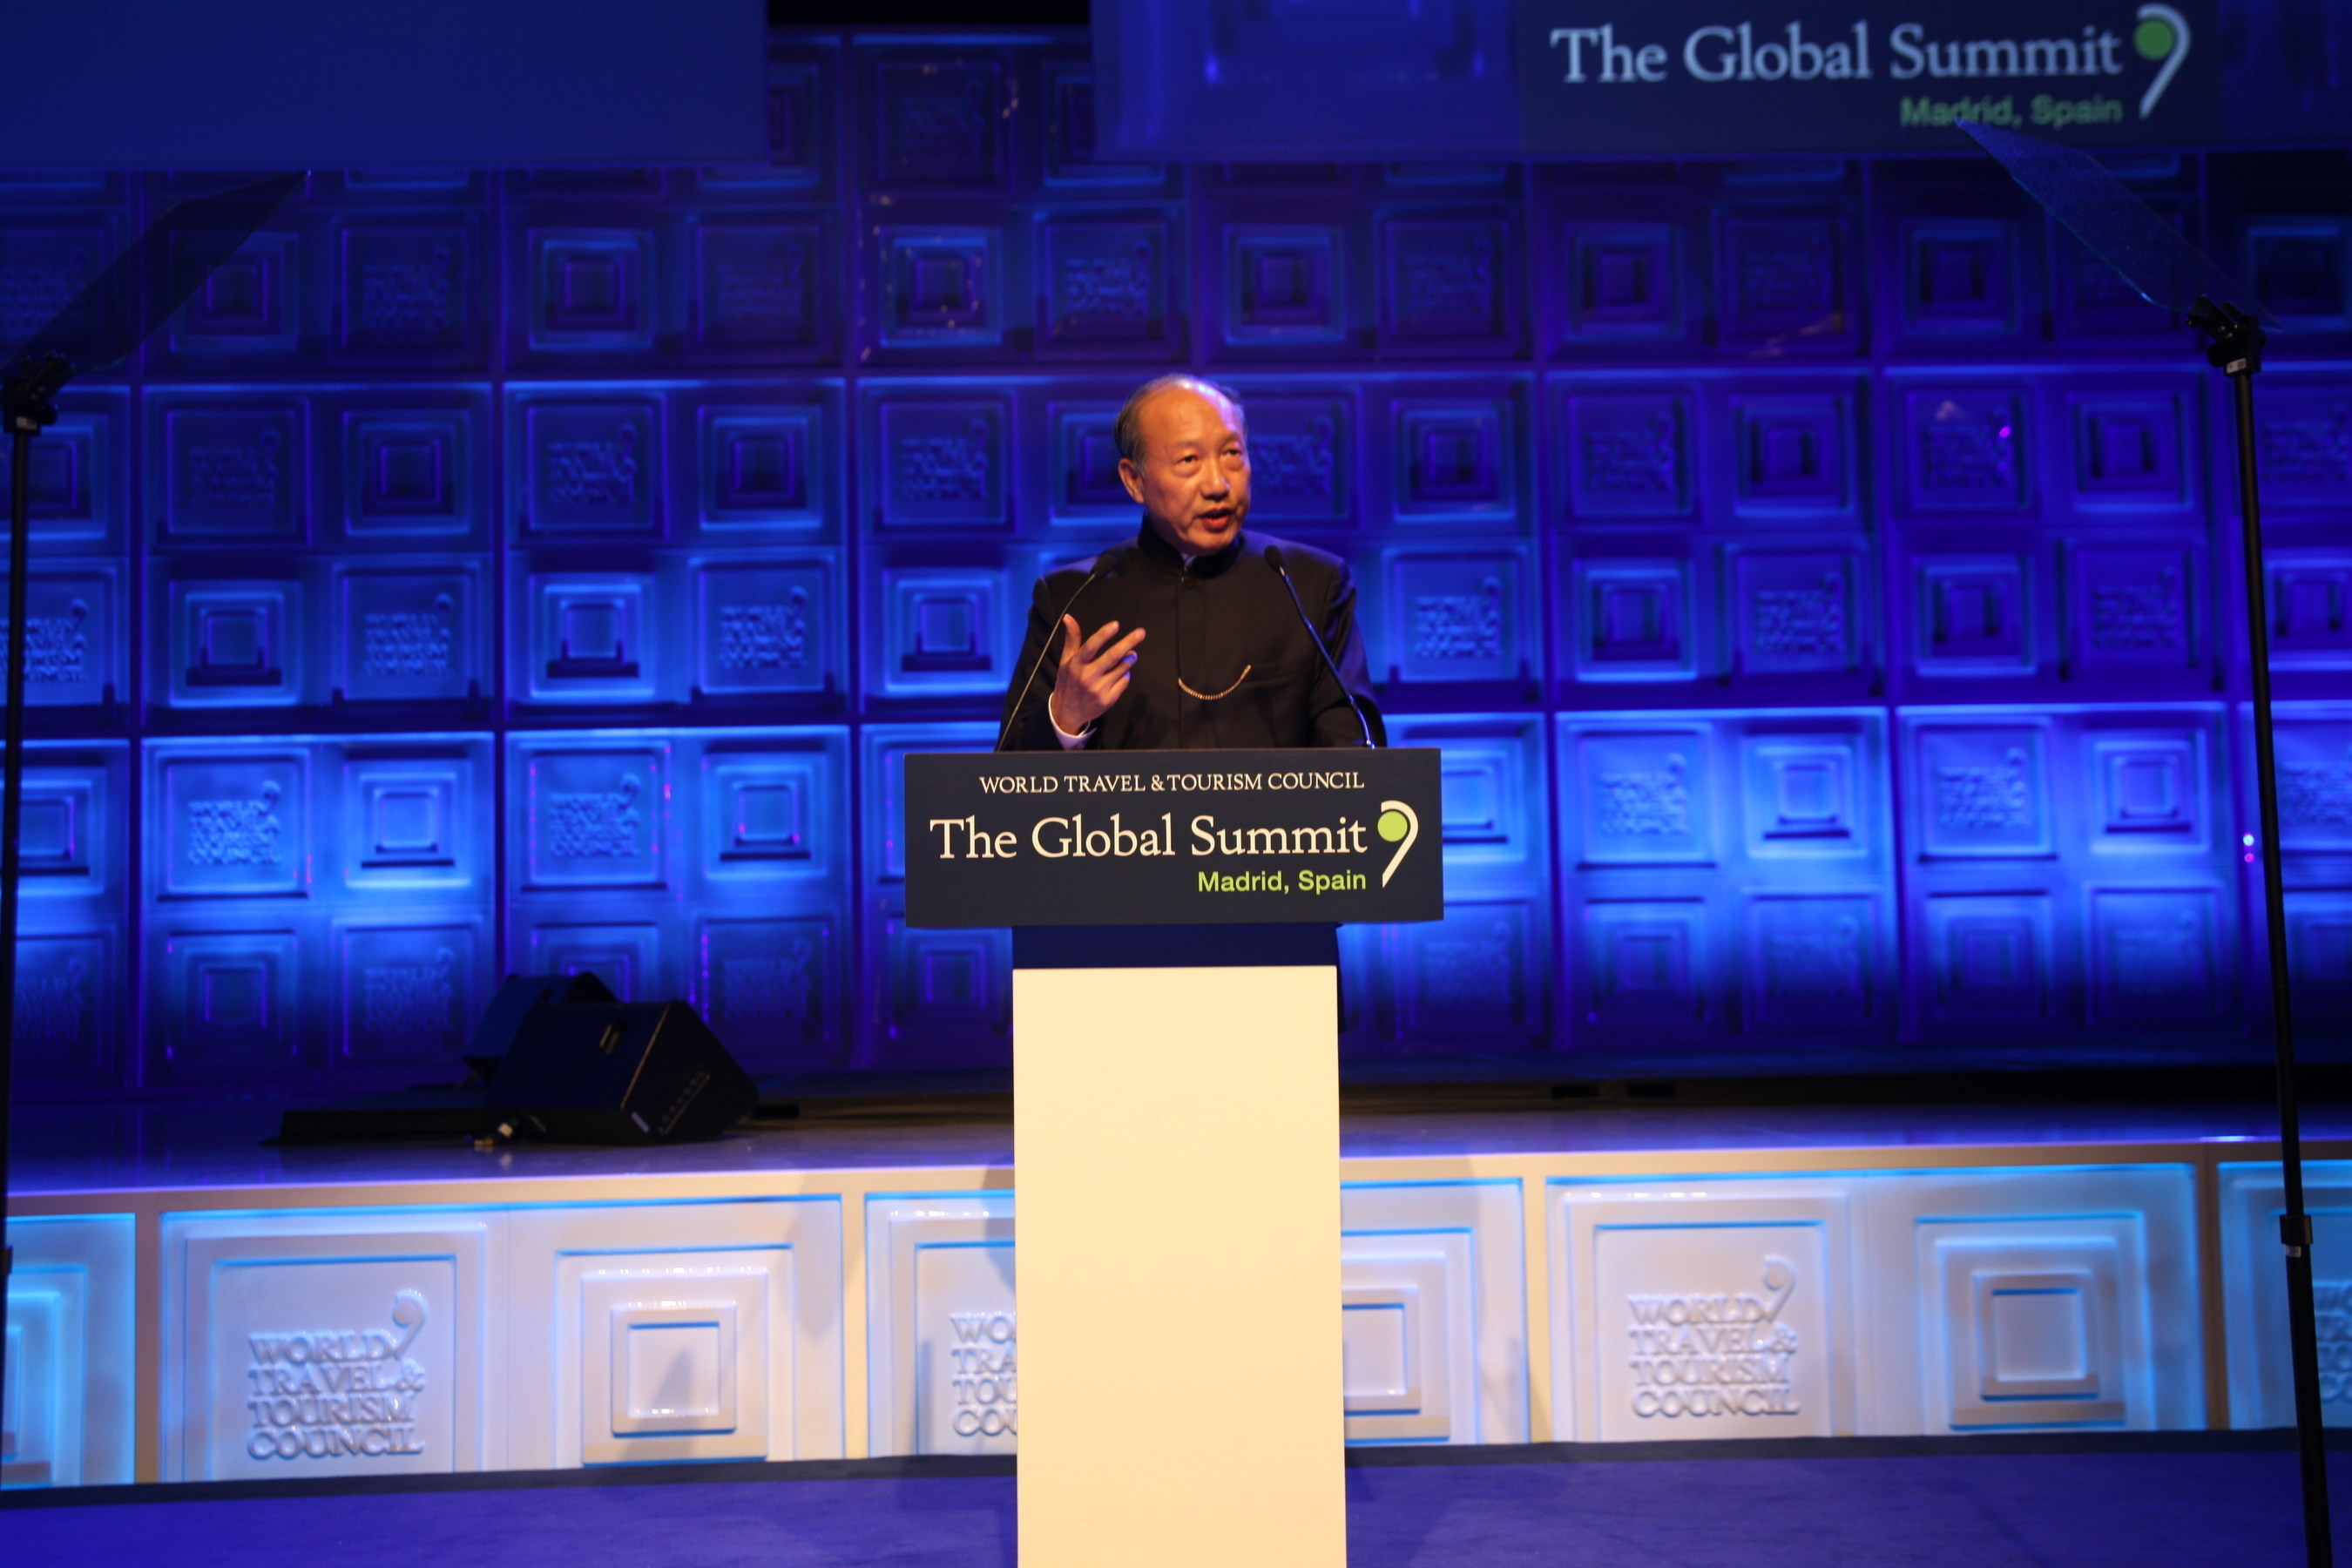 HNA Group chairman Chen Feng gives a speech at the 2015 World Travel & Tourism Council (WTTC) Global Summit